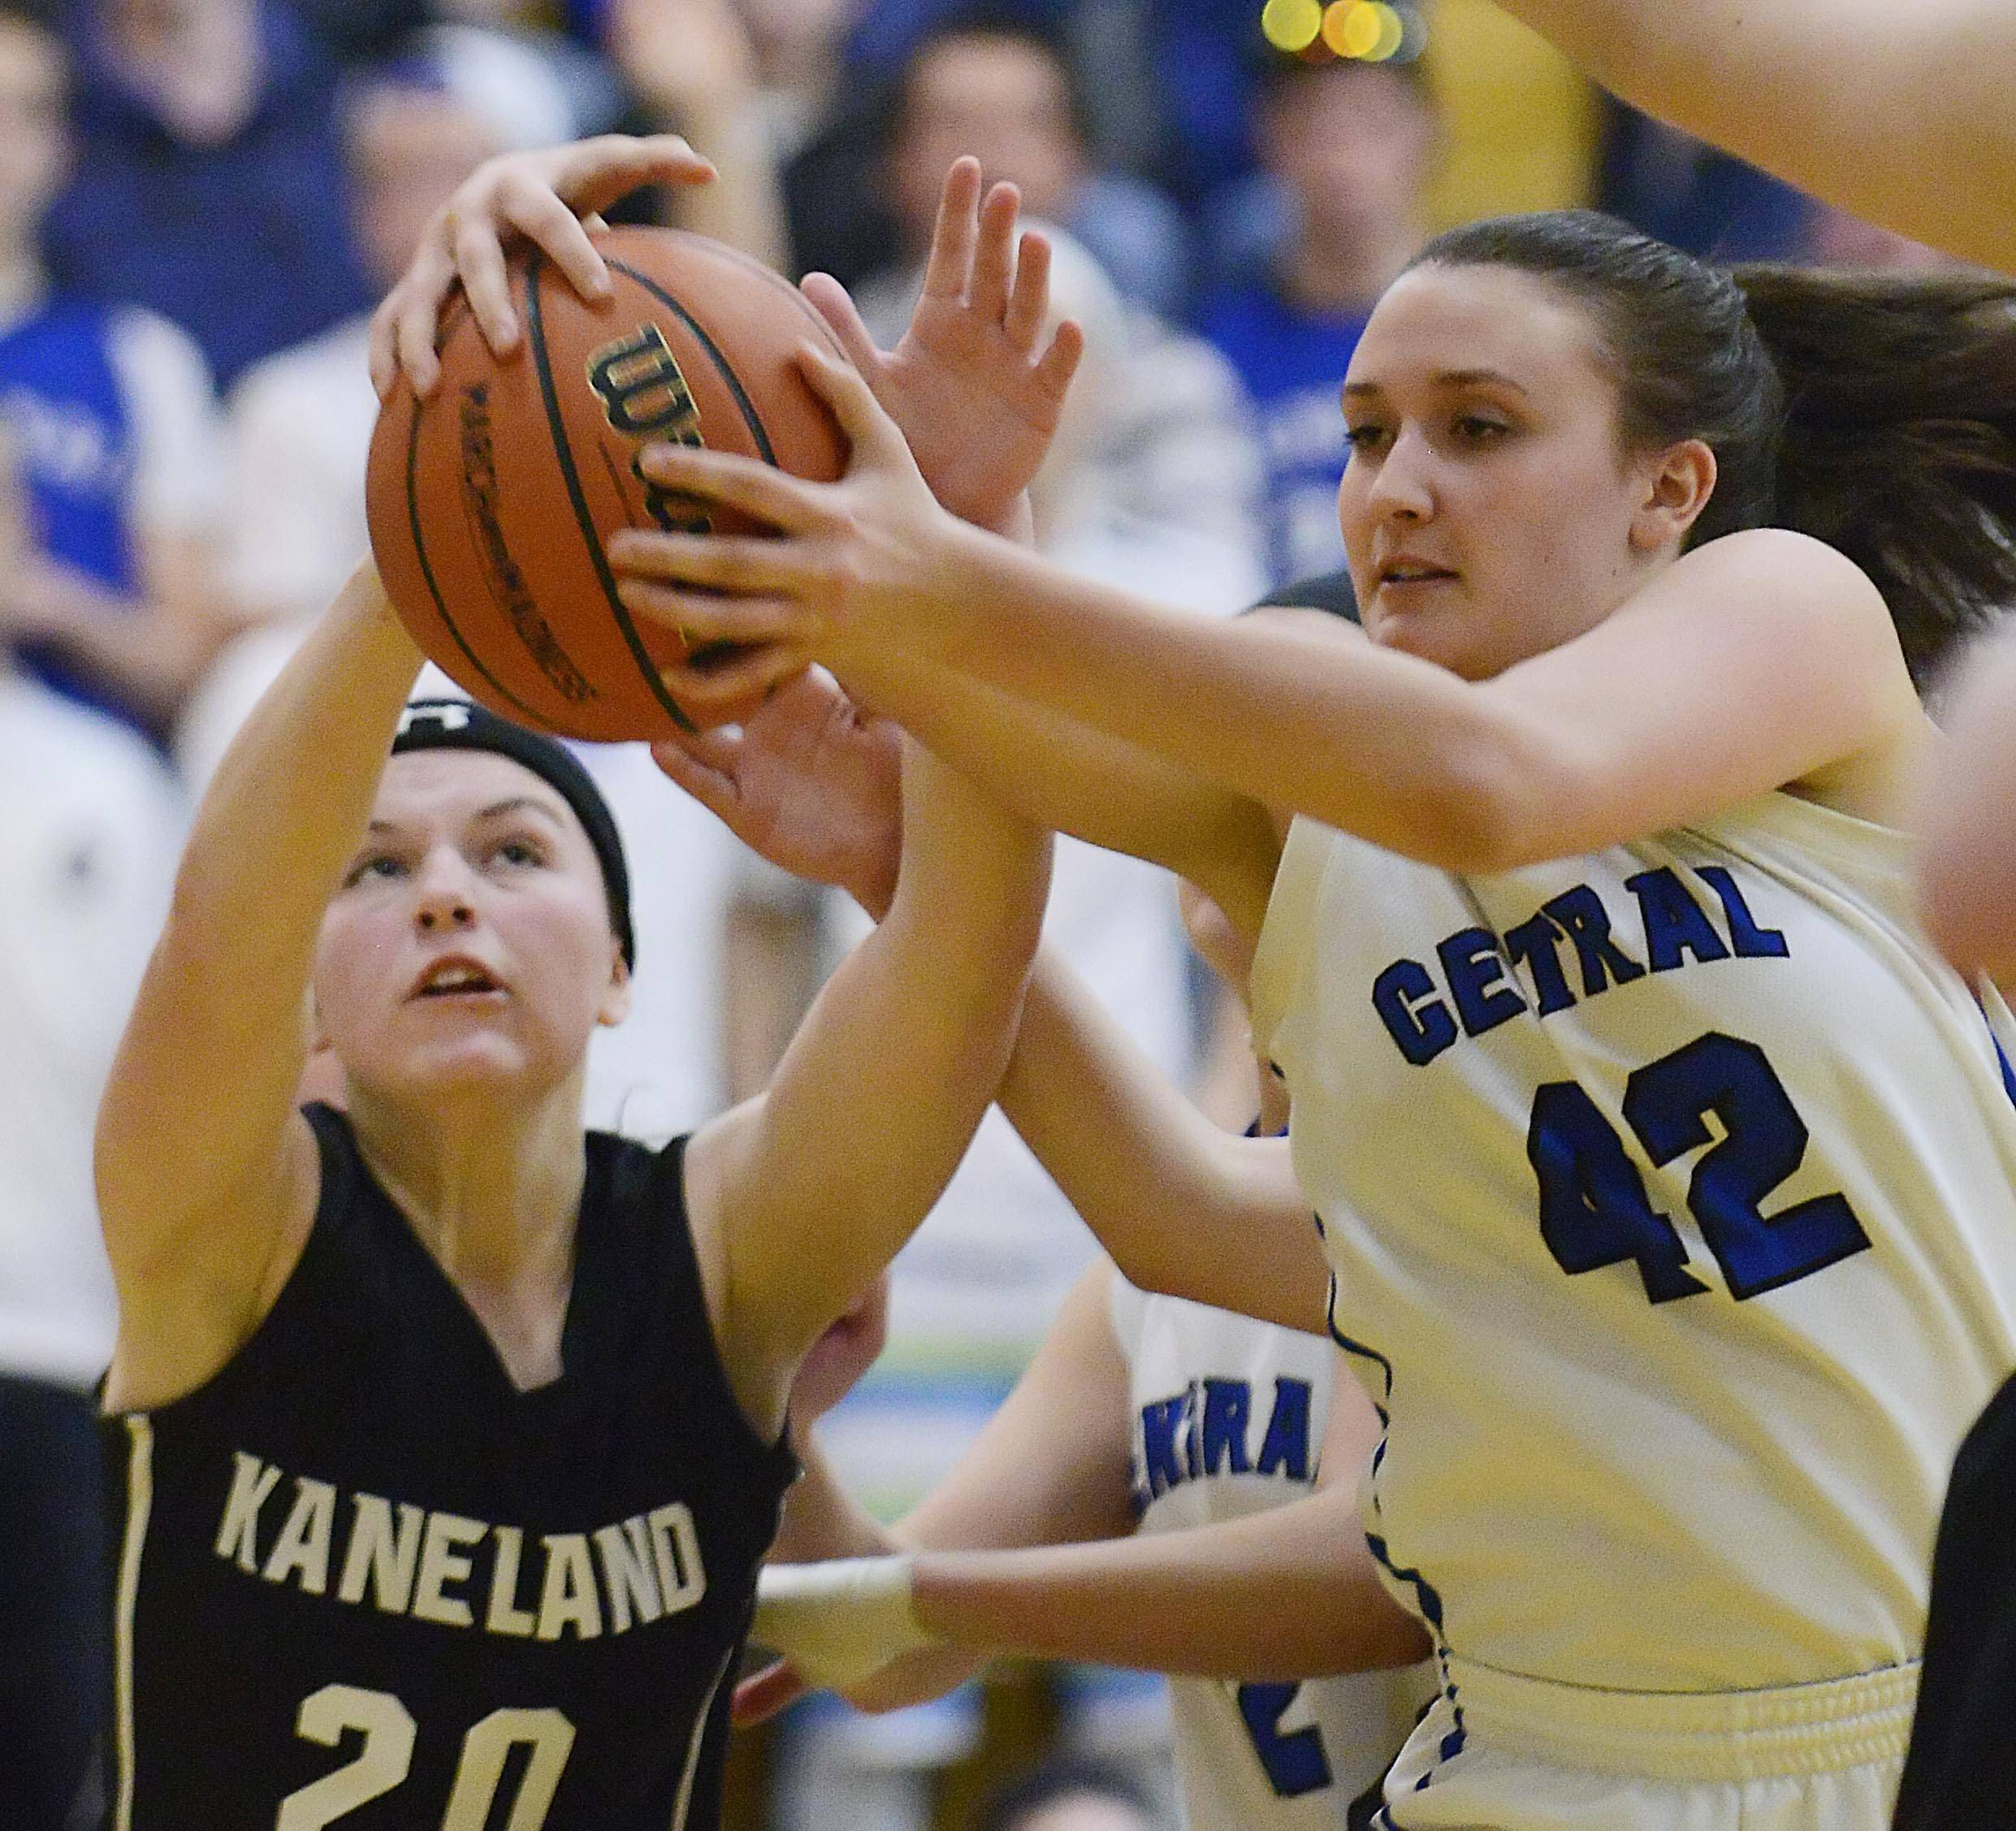 Kaneland's Morgan Weber and Burlington Central's Alison Colby reach for a rebound.